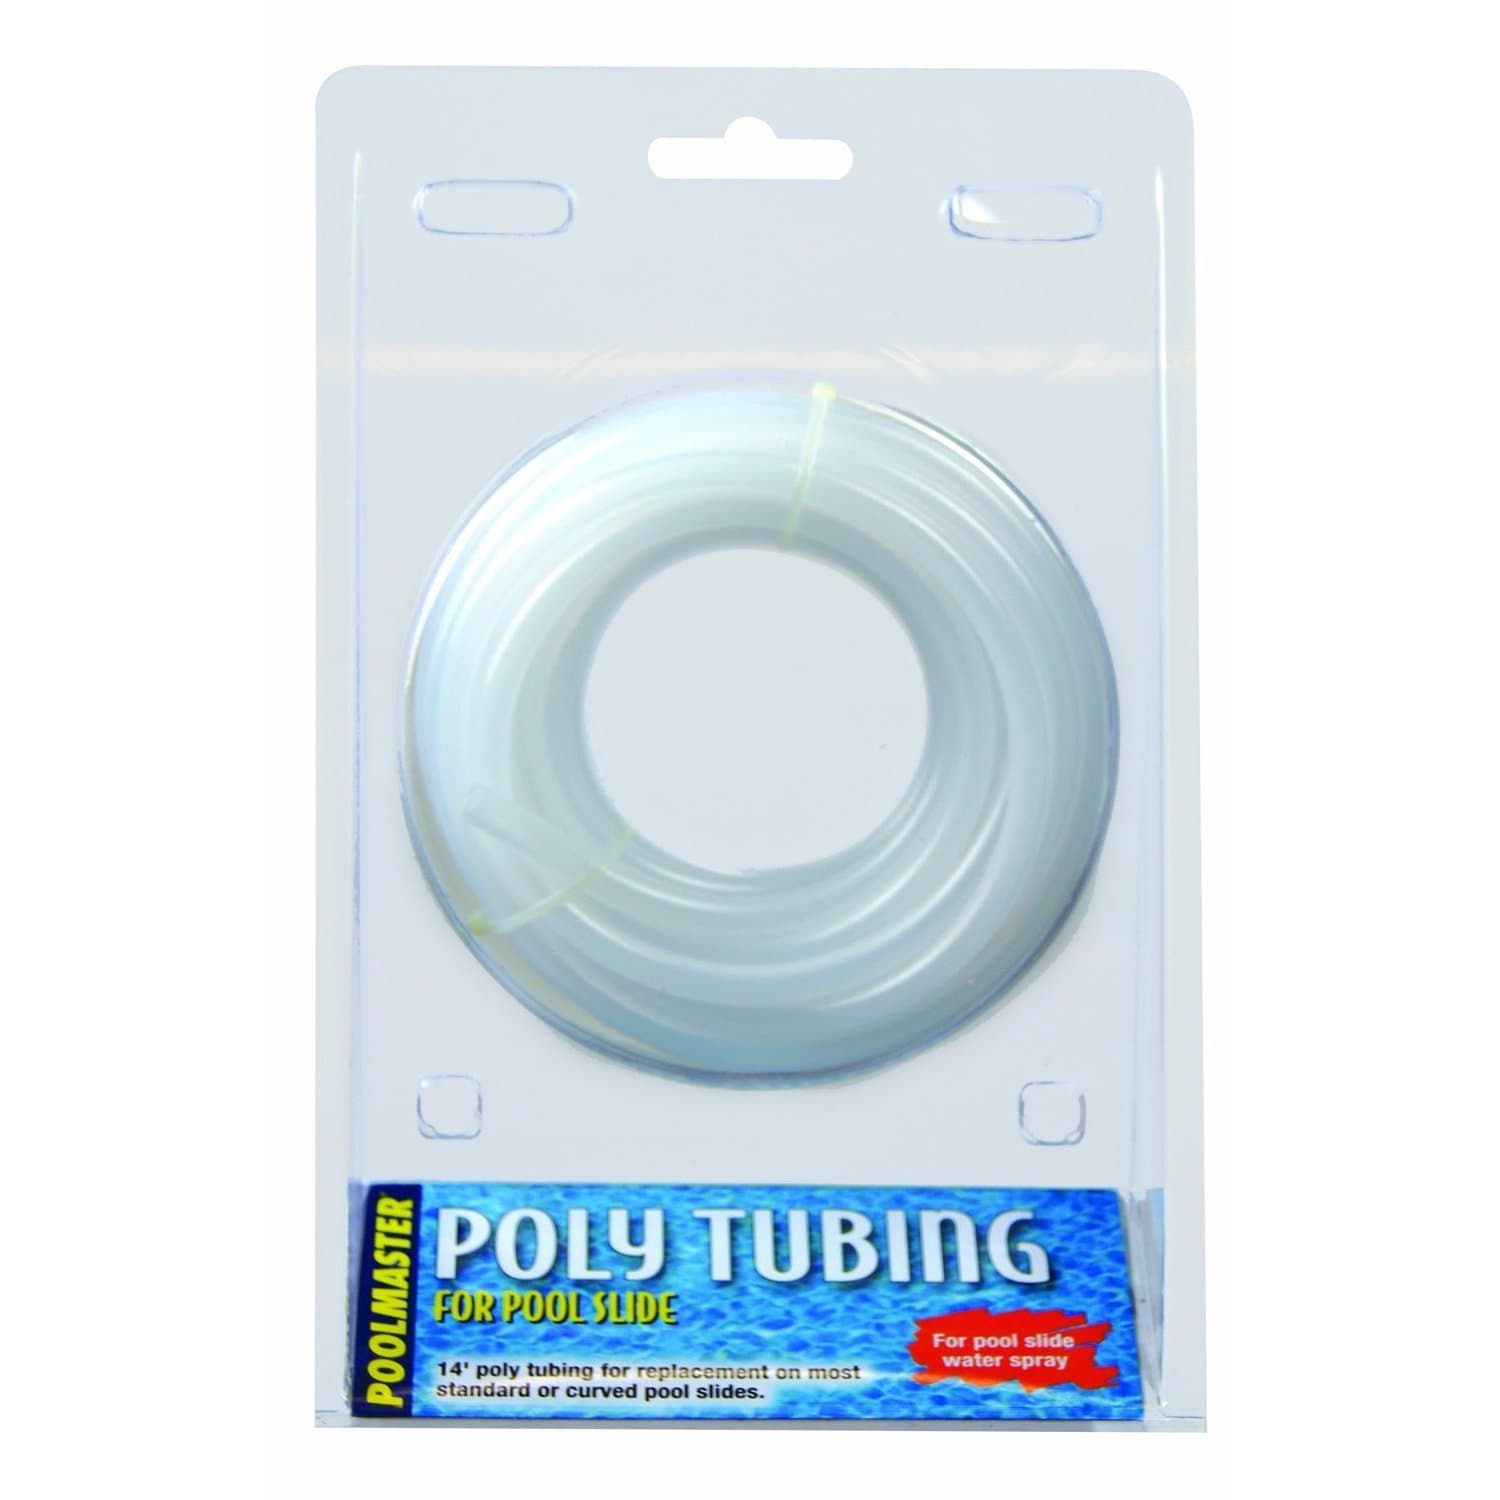 Poolmaster Pool Slide Replacement Tubing - 12-ft, Clear